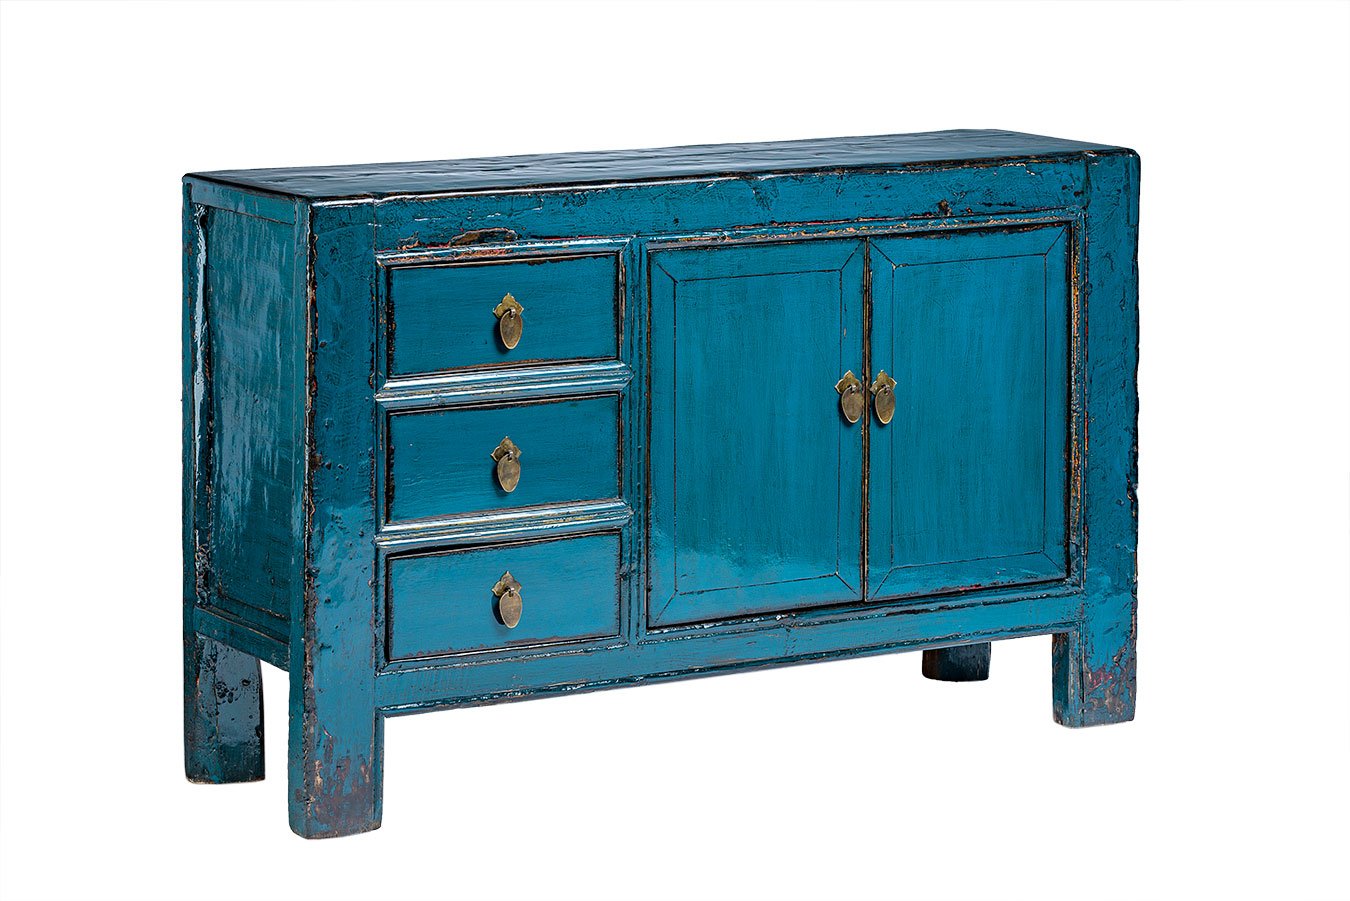 Merveilleux Antique Small Chinese Cabinet